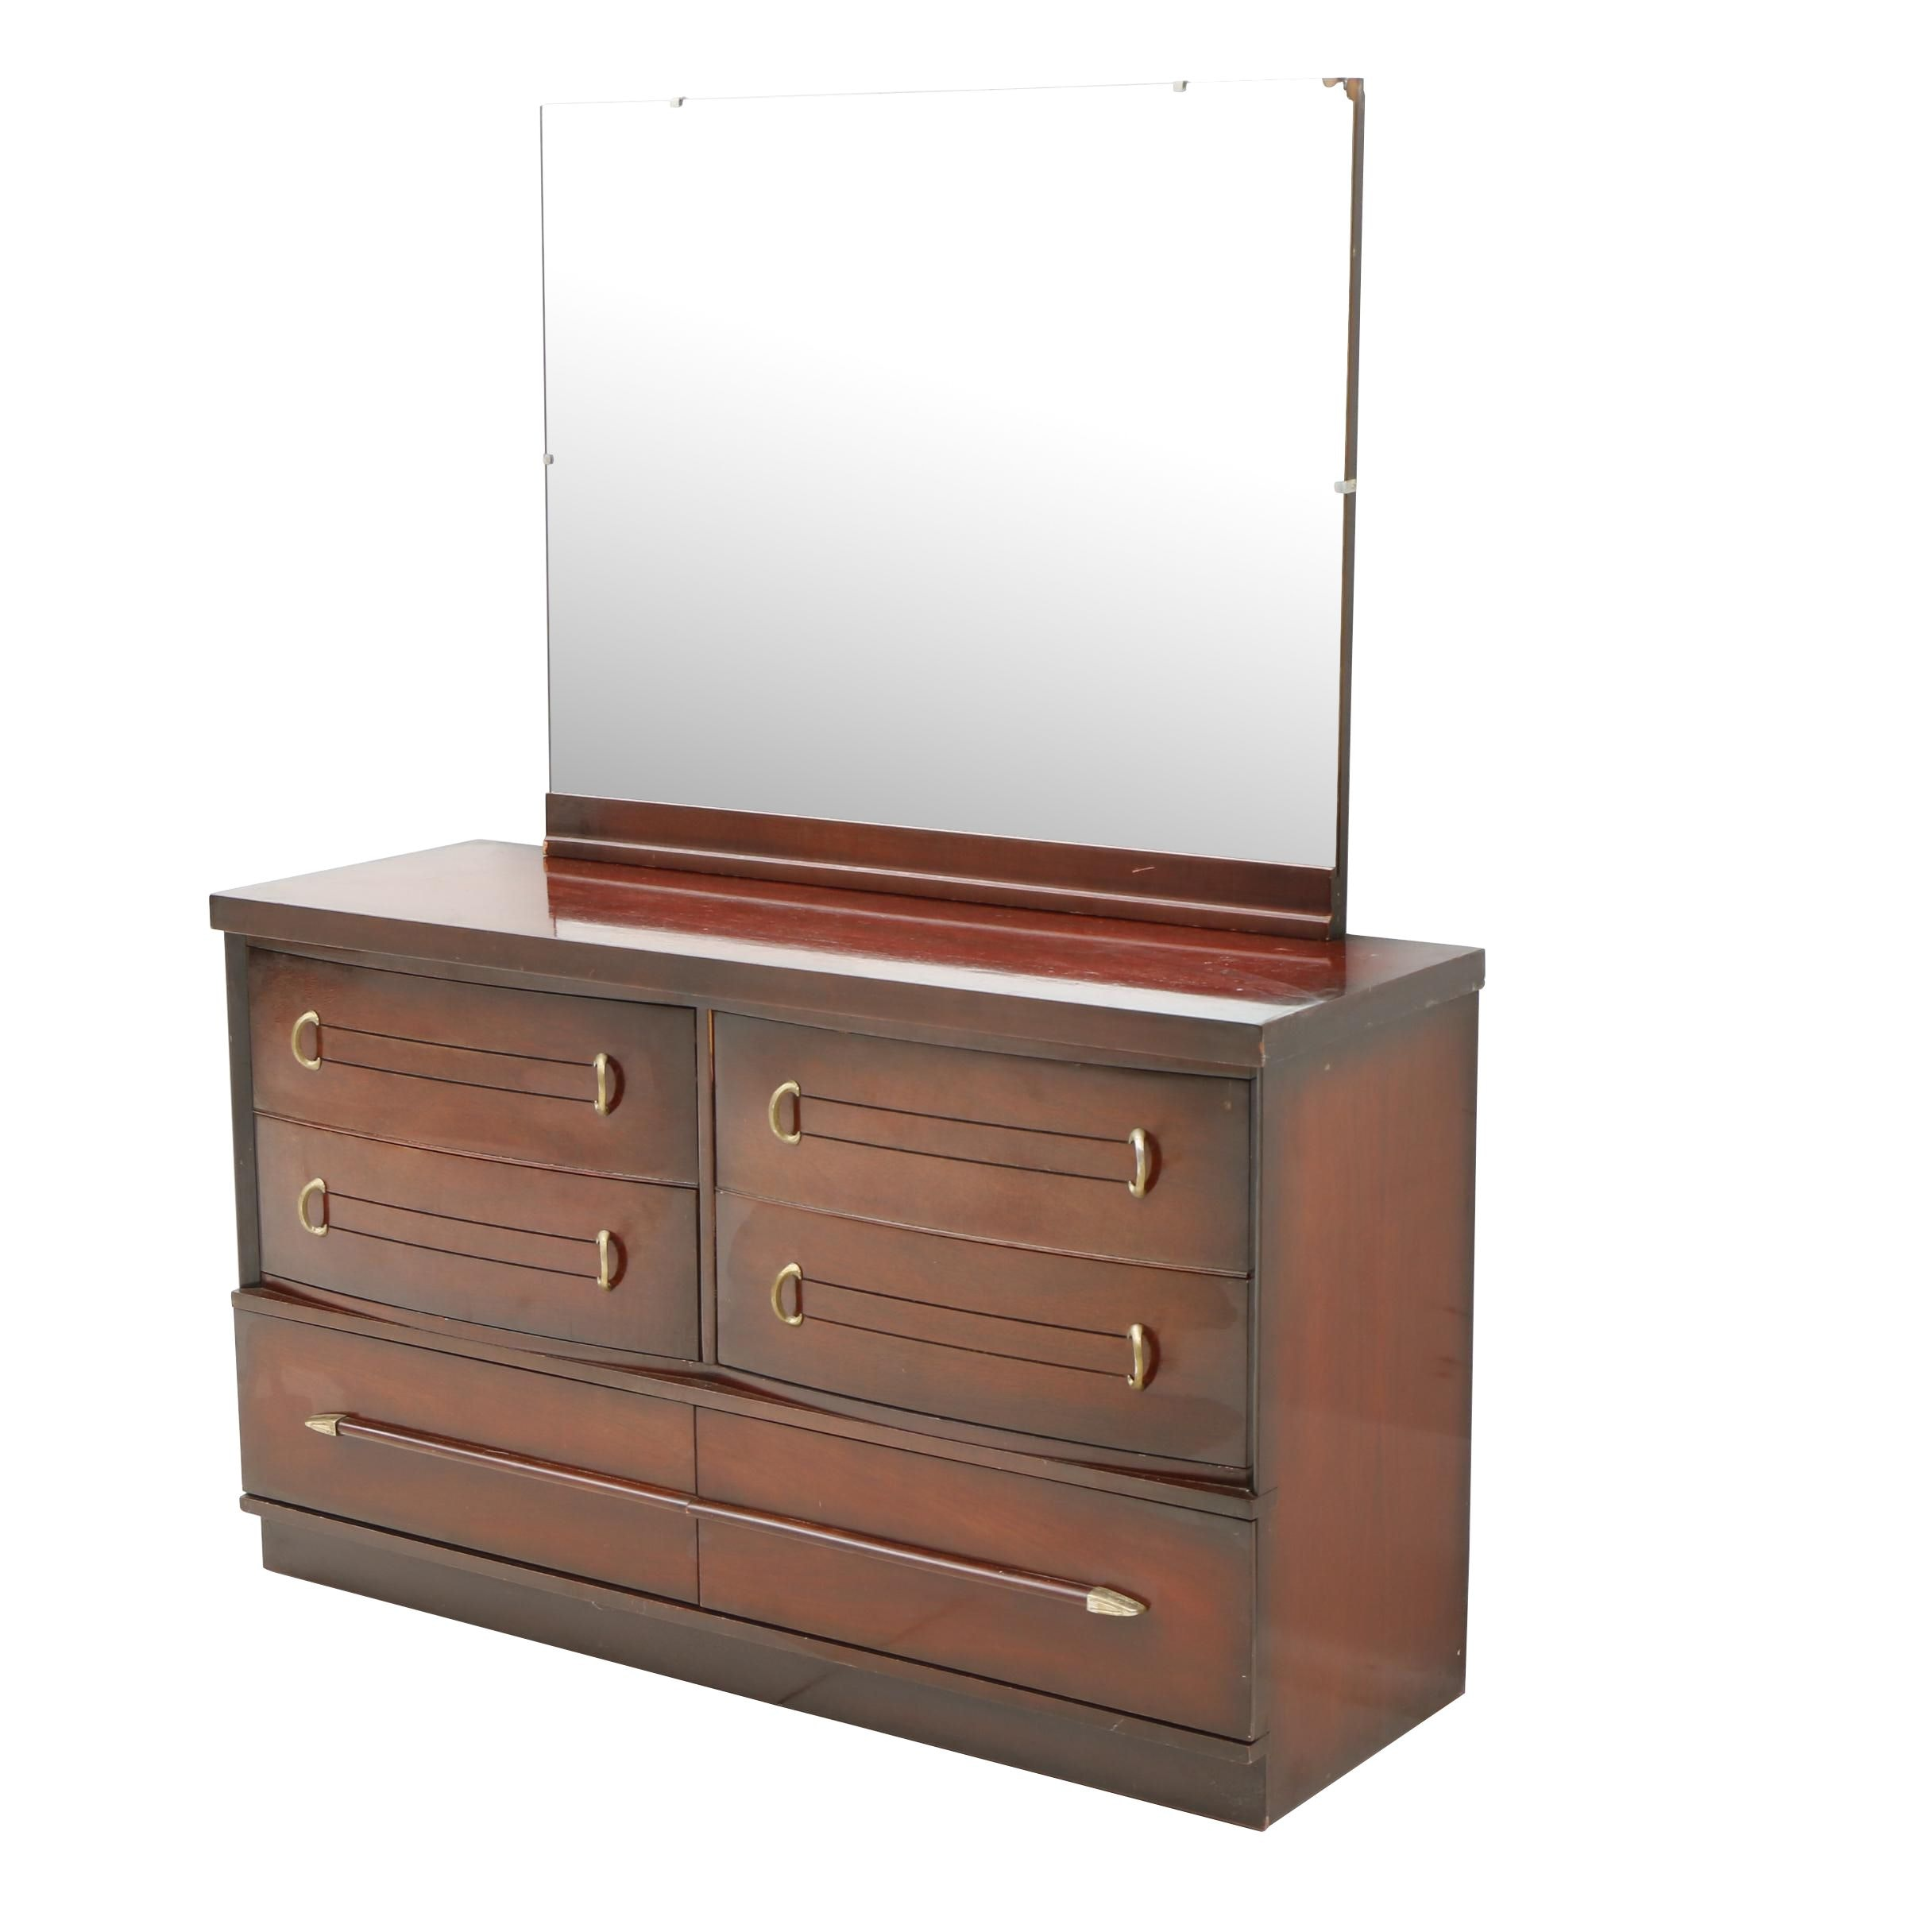 Dixie Mahogany Chest of Drawers with Mirror